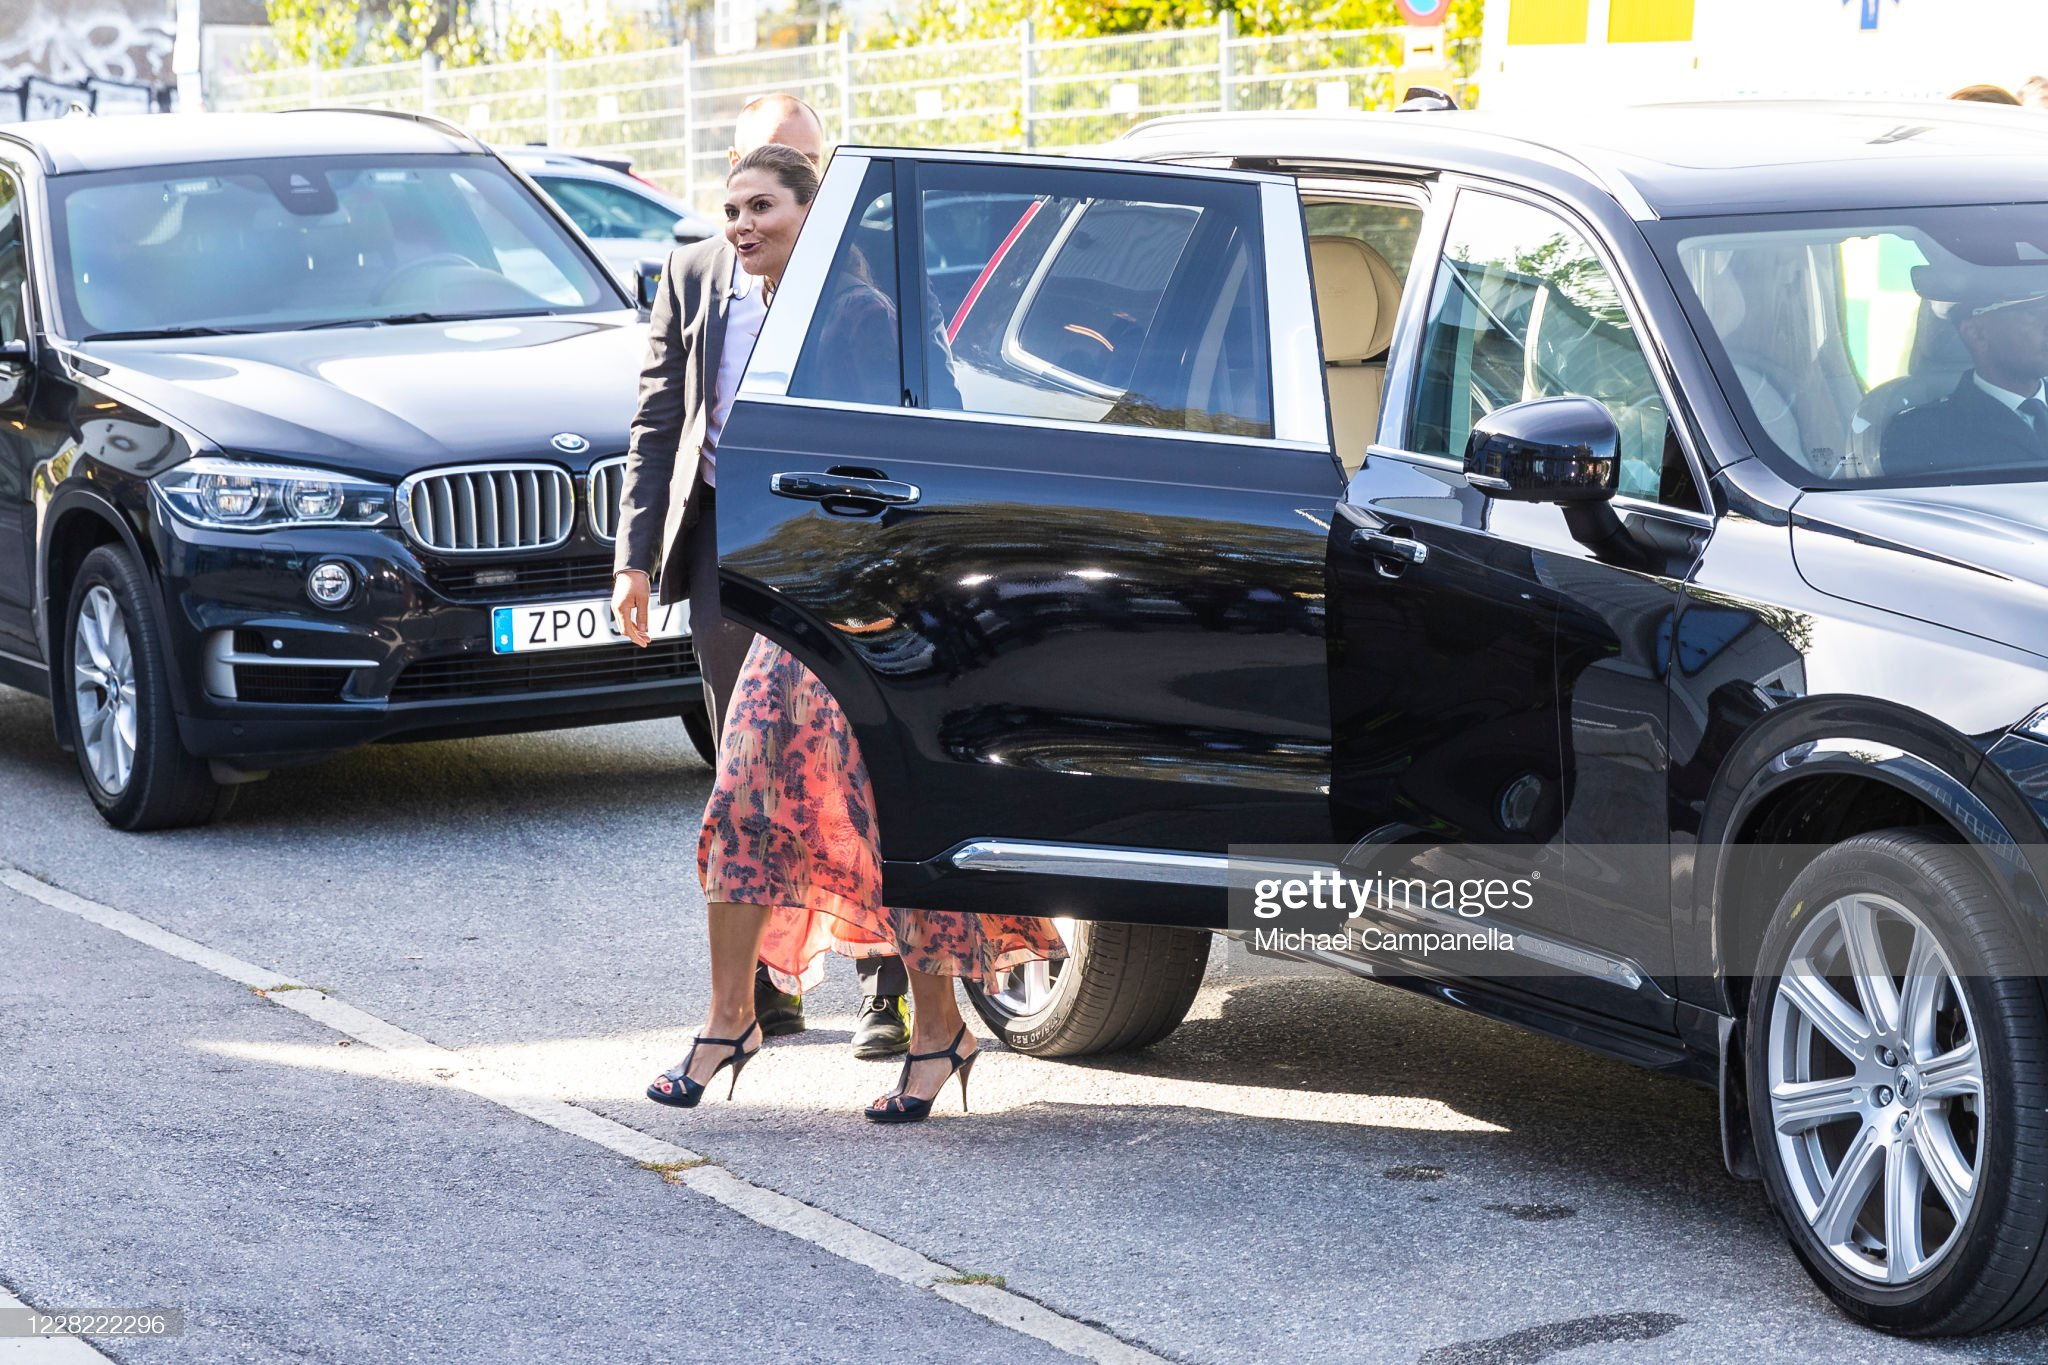 crown-princess-victoria-of-sweden-visits-an-ambulance-station-in-the-picture-id1228222296